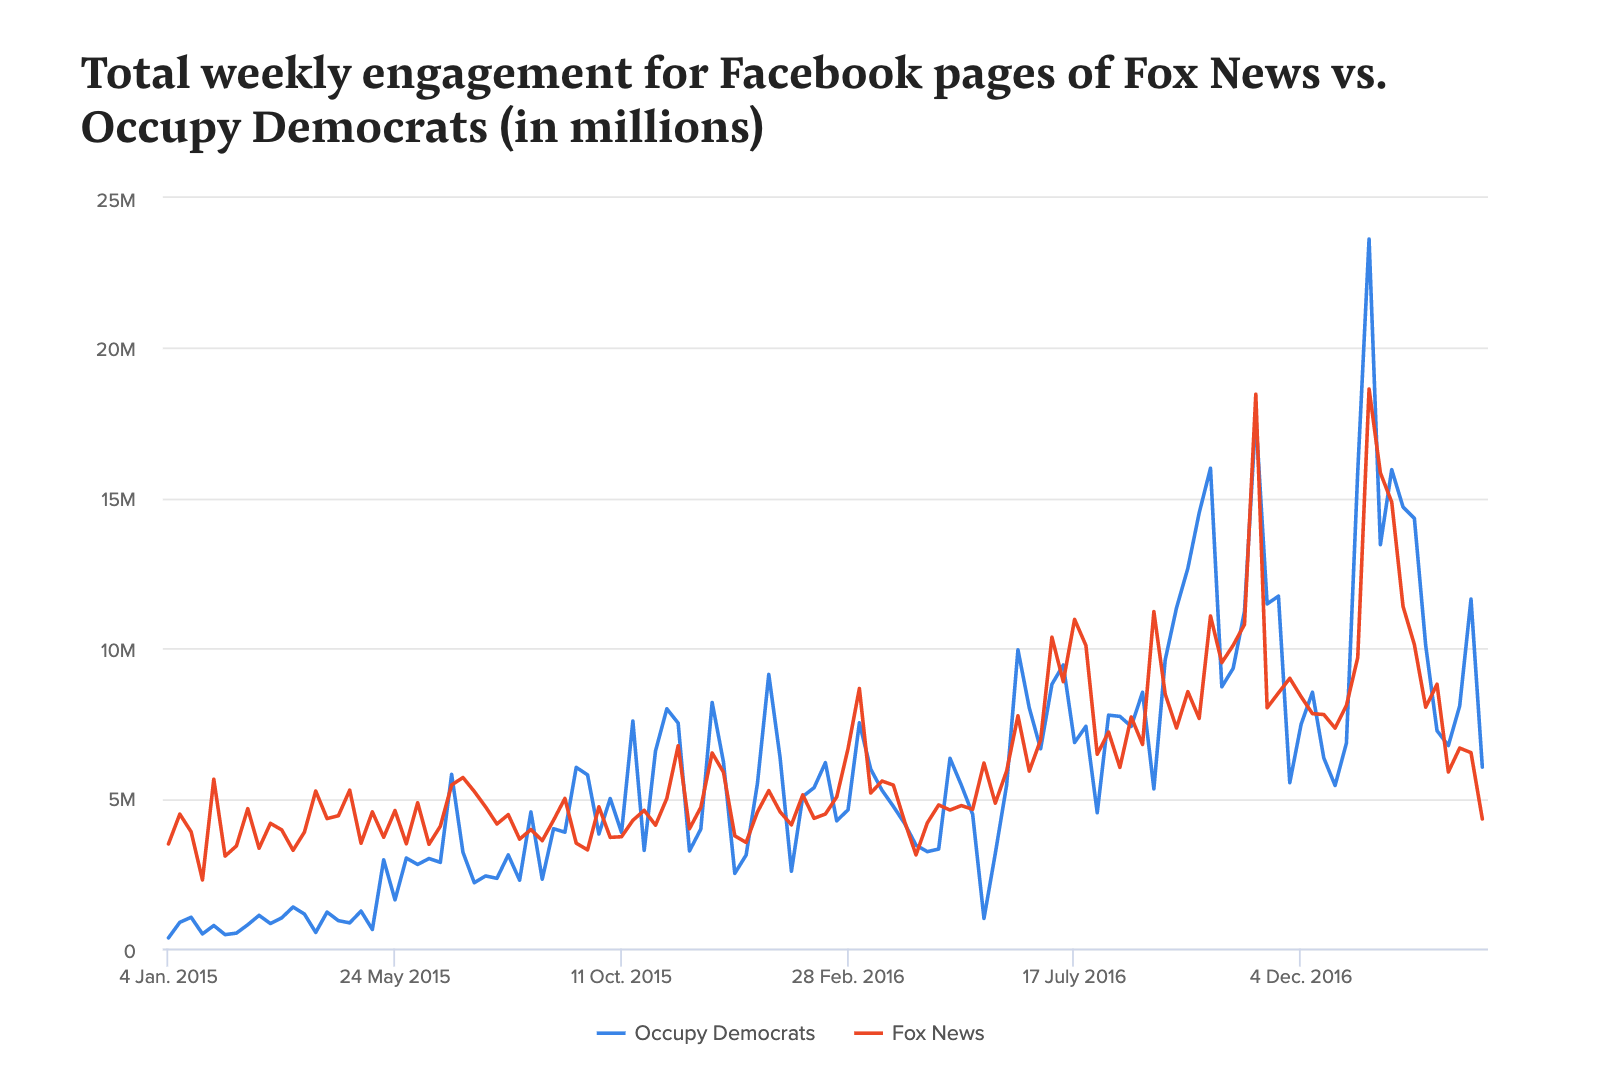 A graph comparing engagement between the Facebook pages for Fox News and Occupy Democrats.